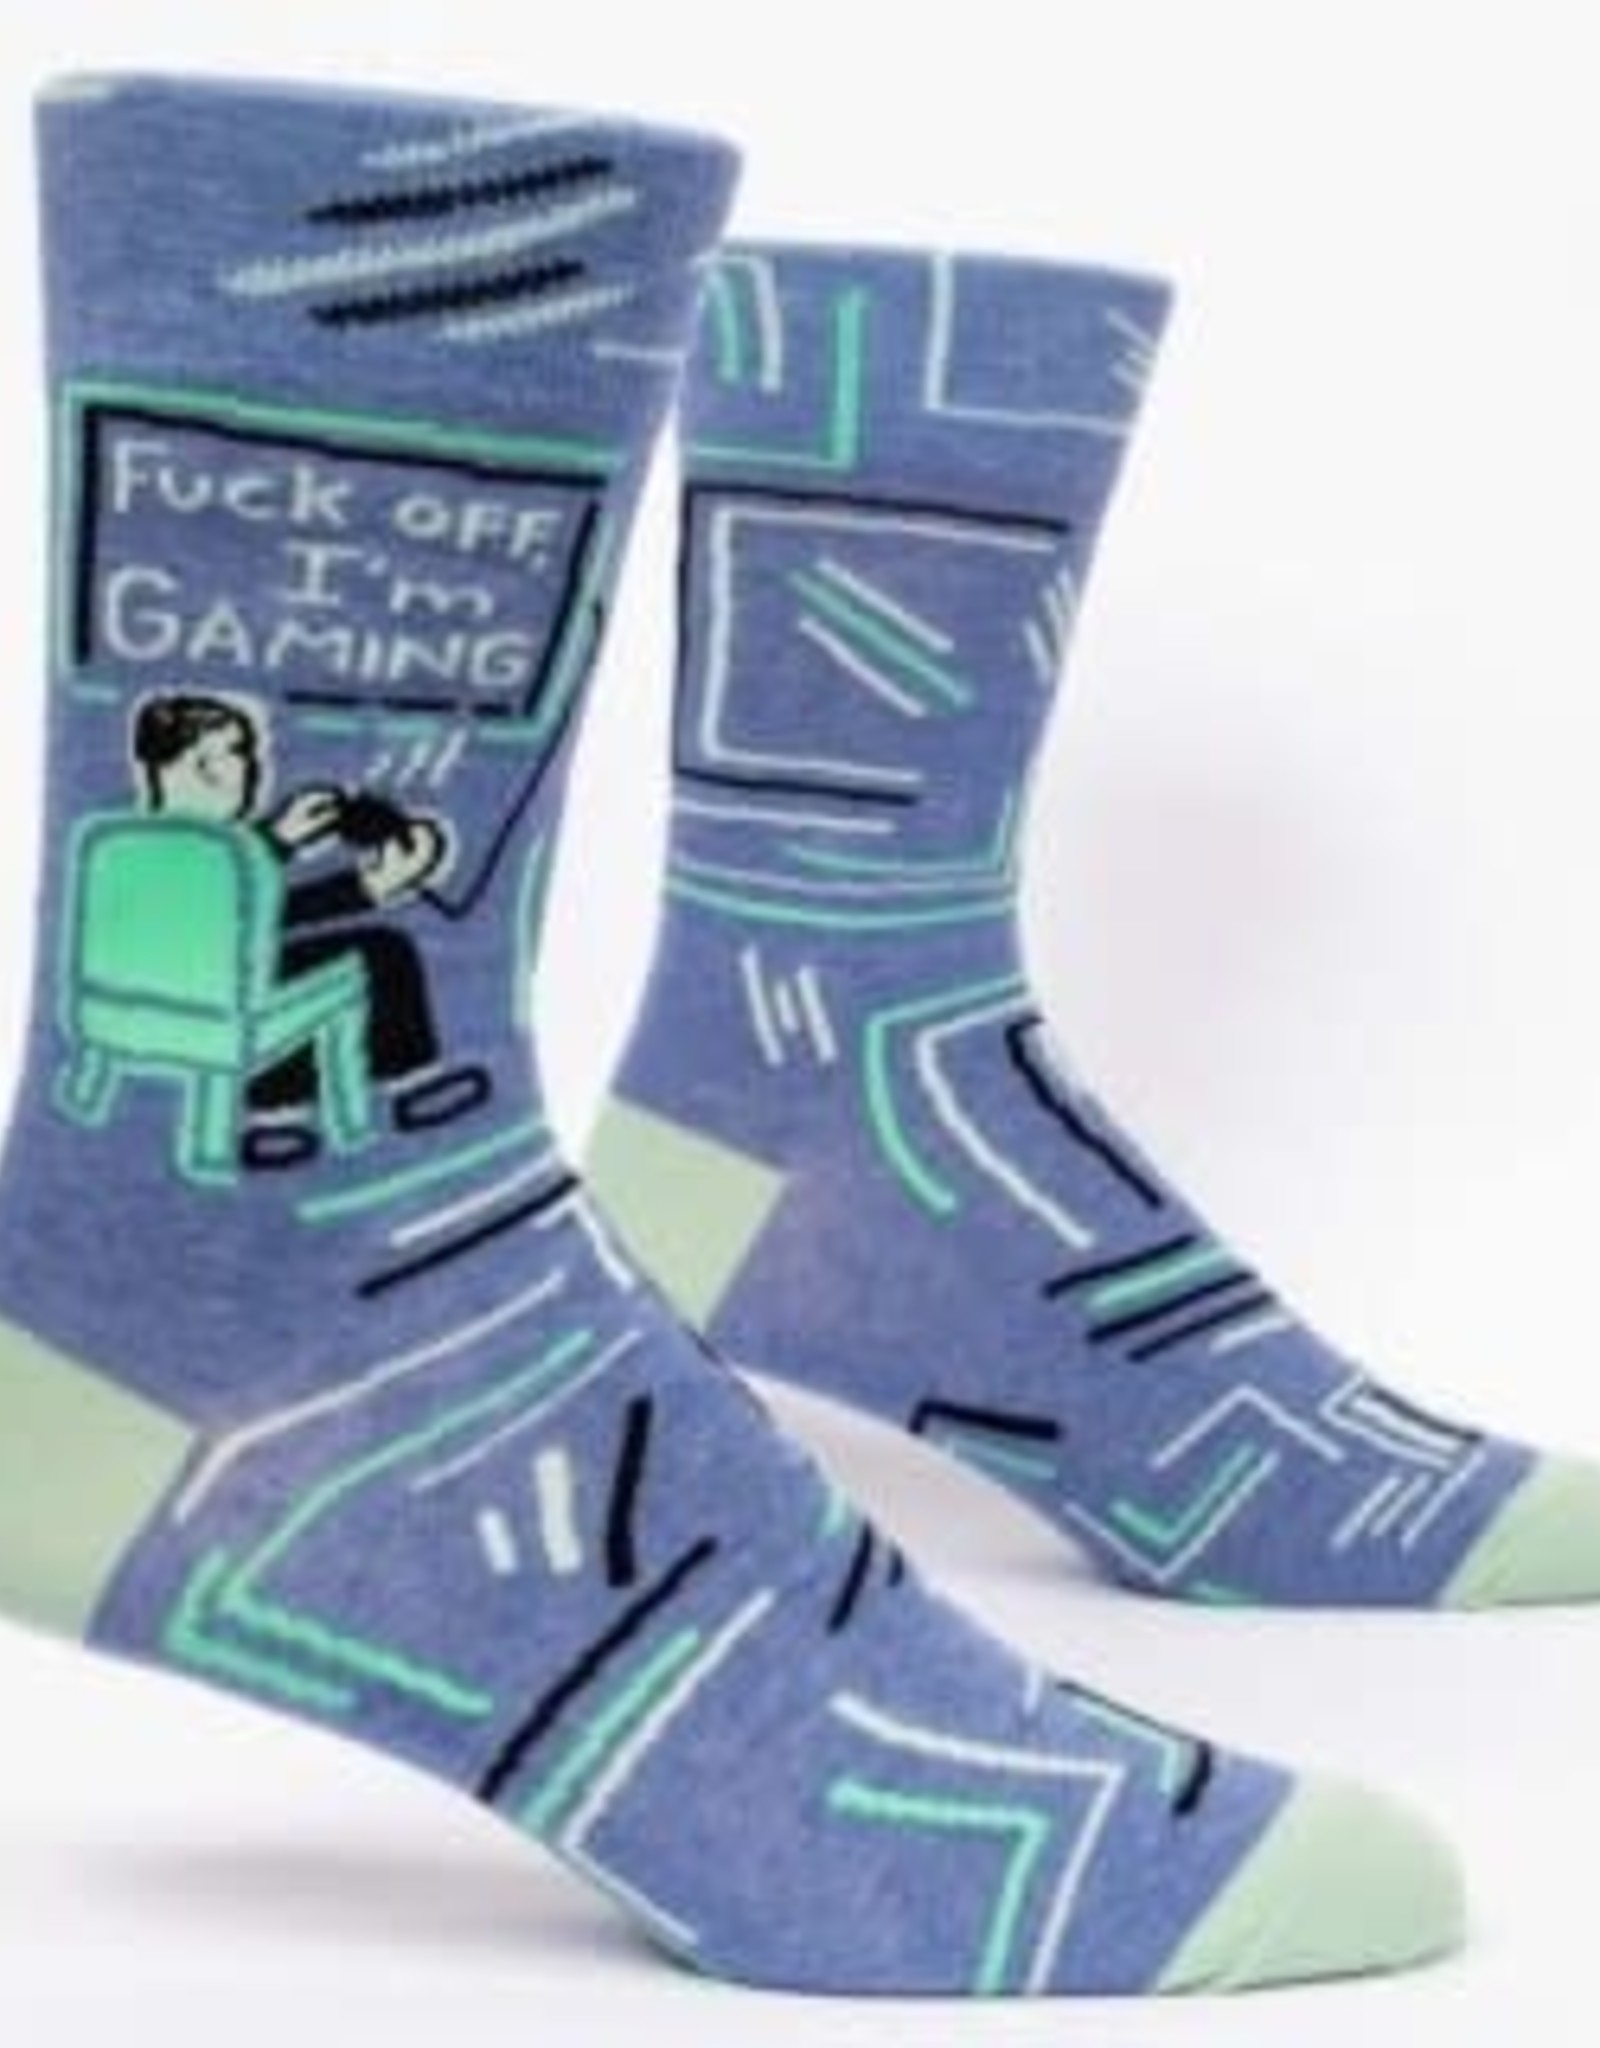 Socks (Mens)  - Fuck Off, I'm Gaming